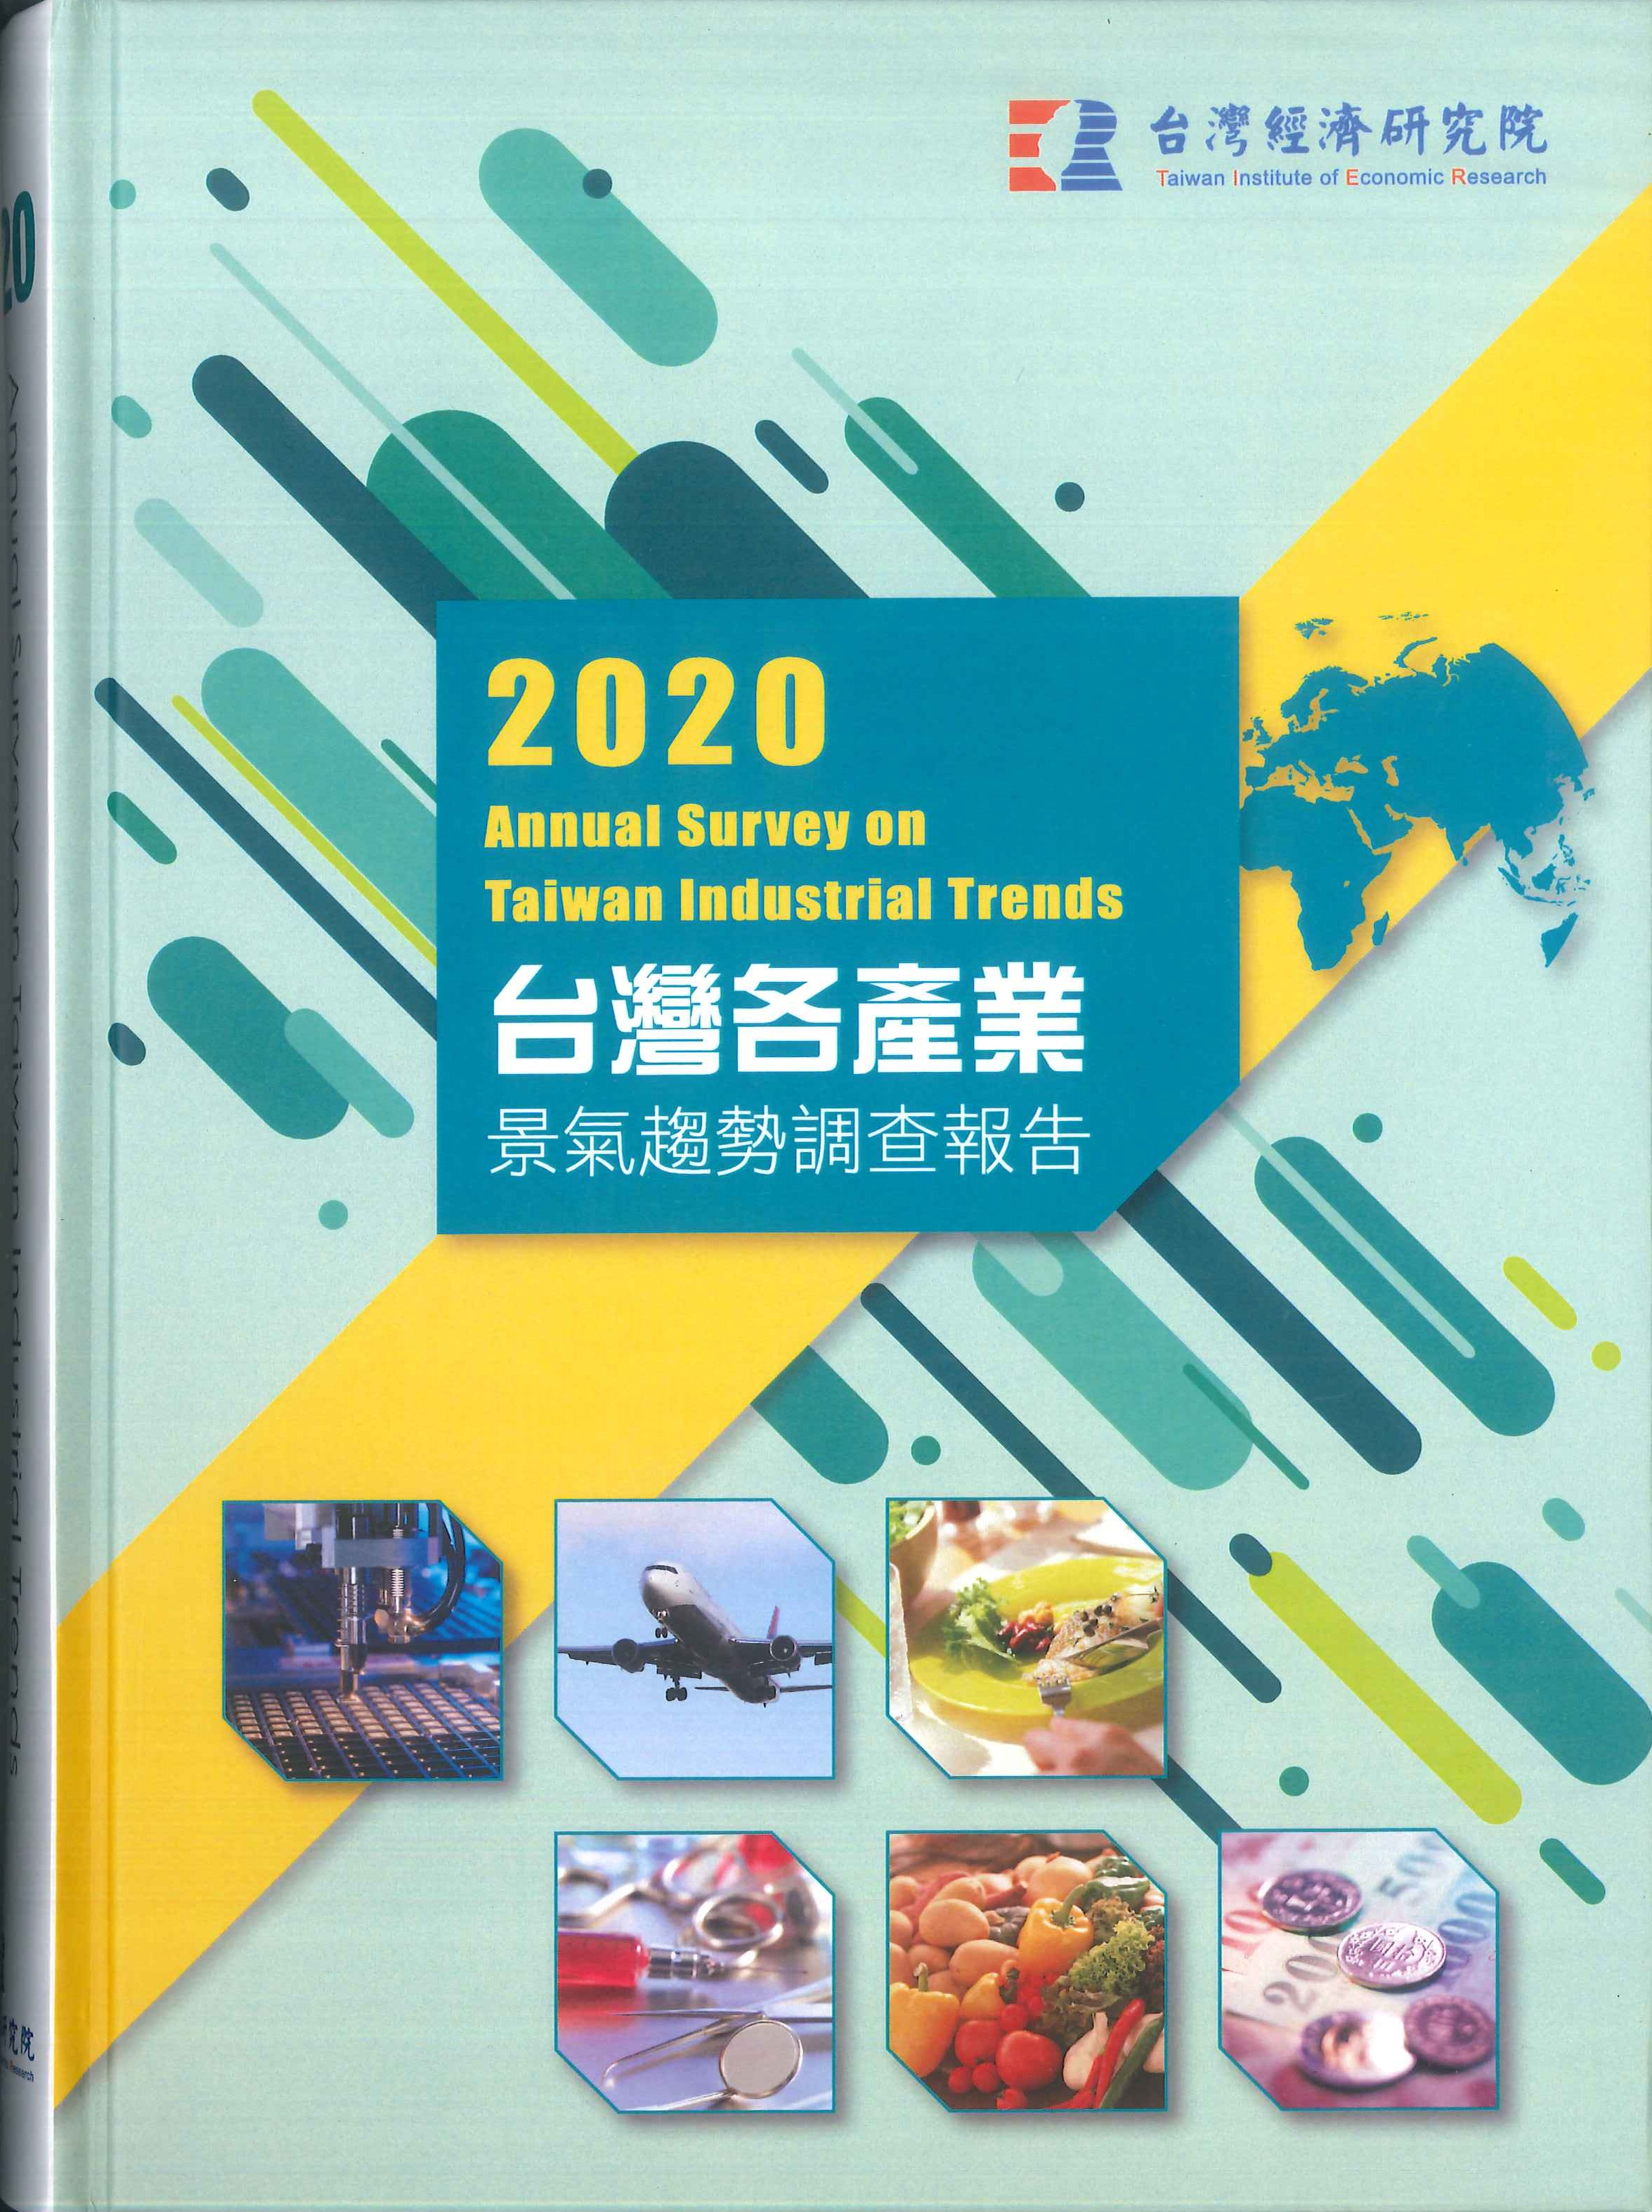 台灣各產業景氣趨勢調查報告=Annual survey on Taiwan industrial trends report